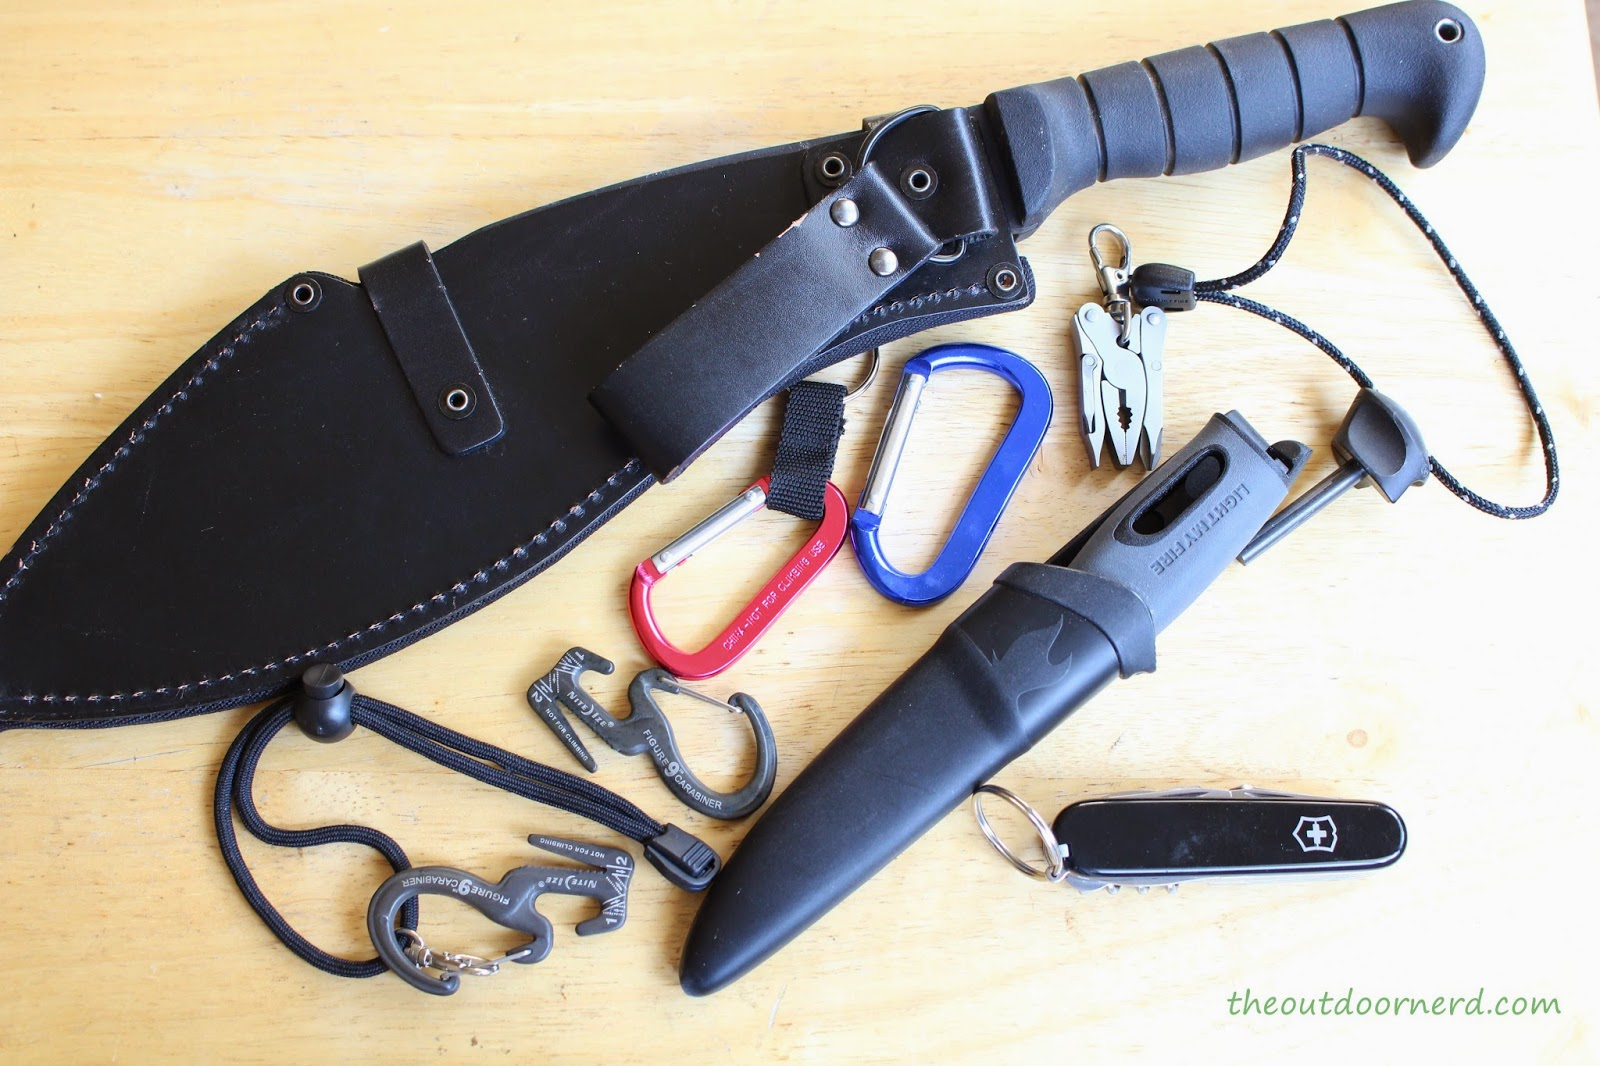 Tools For Emergency Bag: Ka-Bar Kukri, Mora Light My Fire, Victorinox Explorer and More